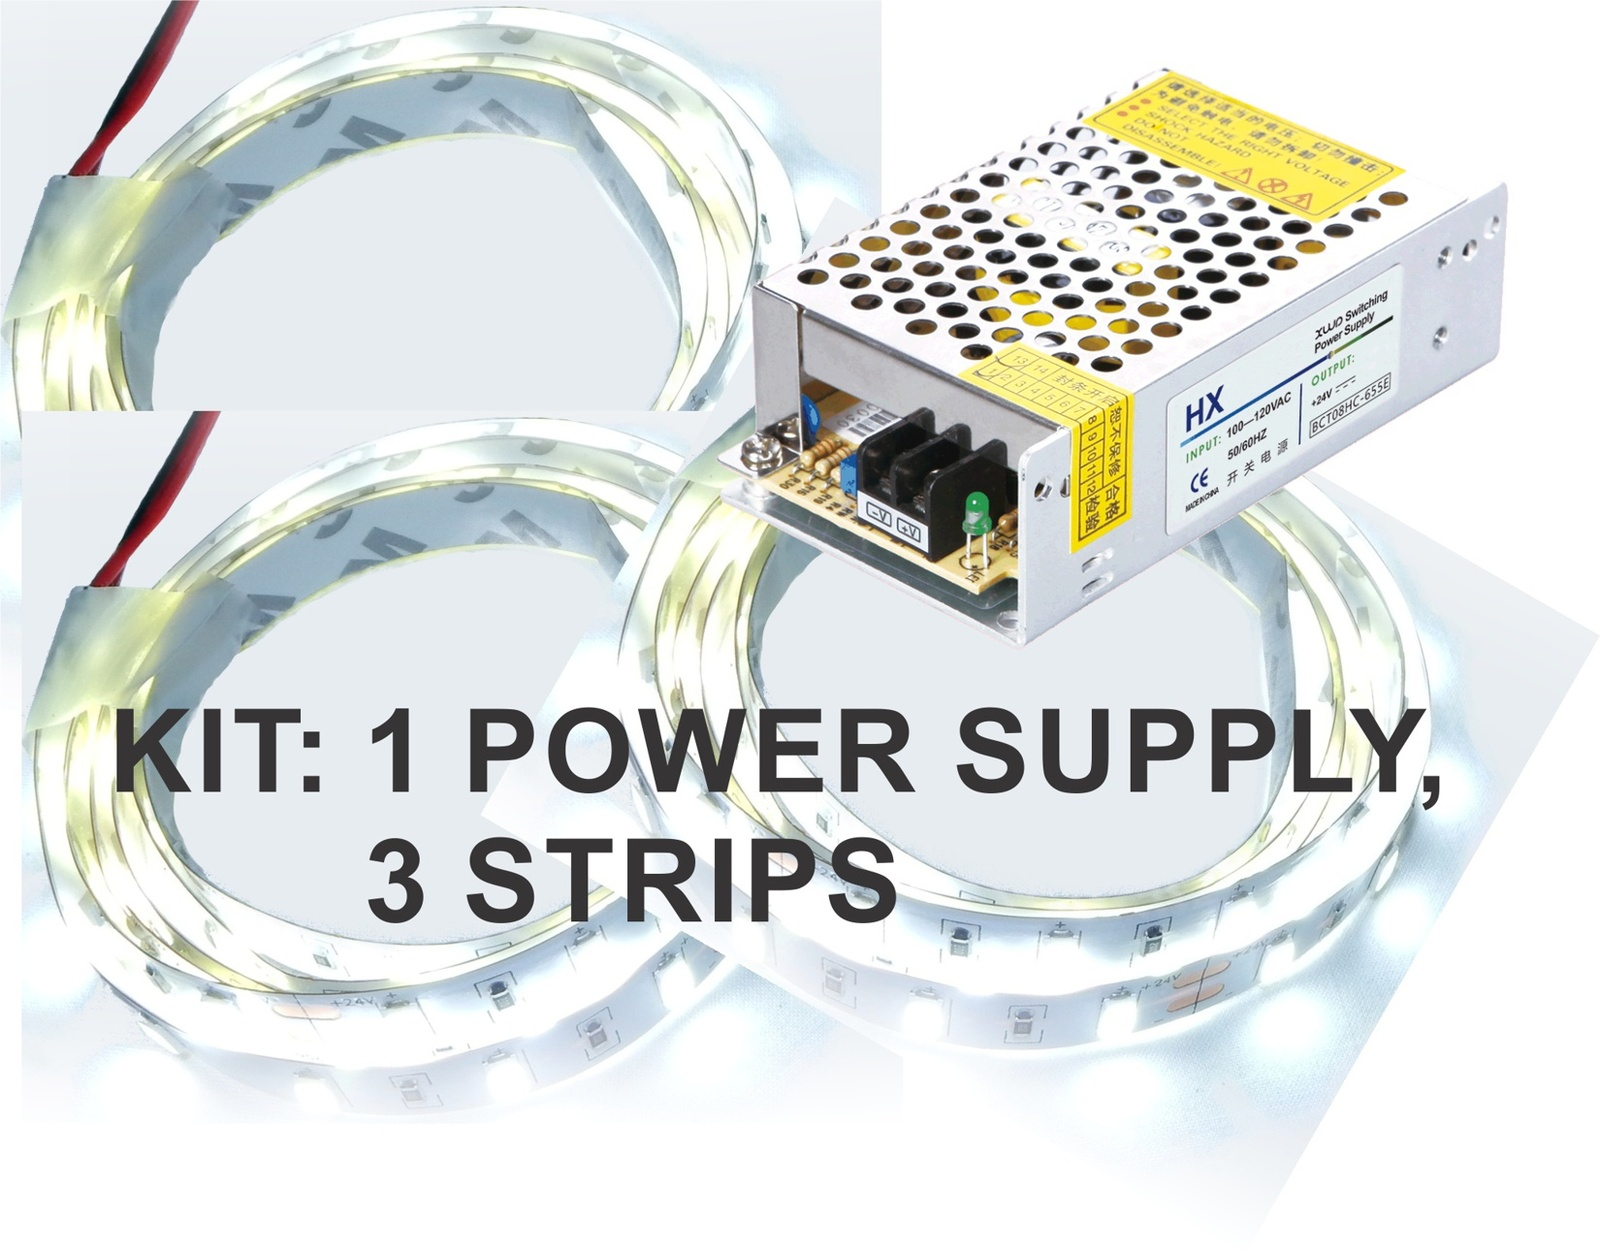 Kit: 100W Power Supply+ 3x 4' LED Strips, Bright White, Hi-lumen